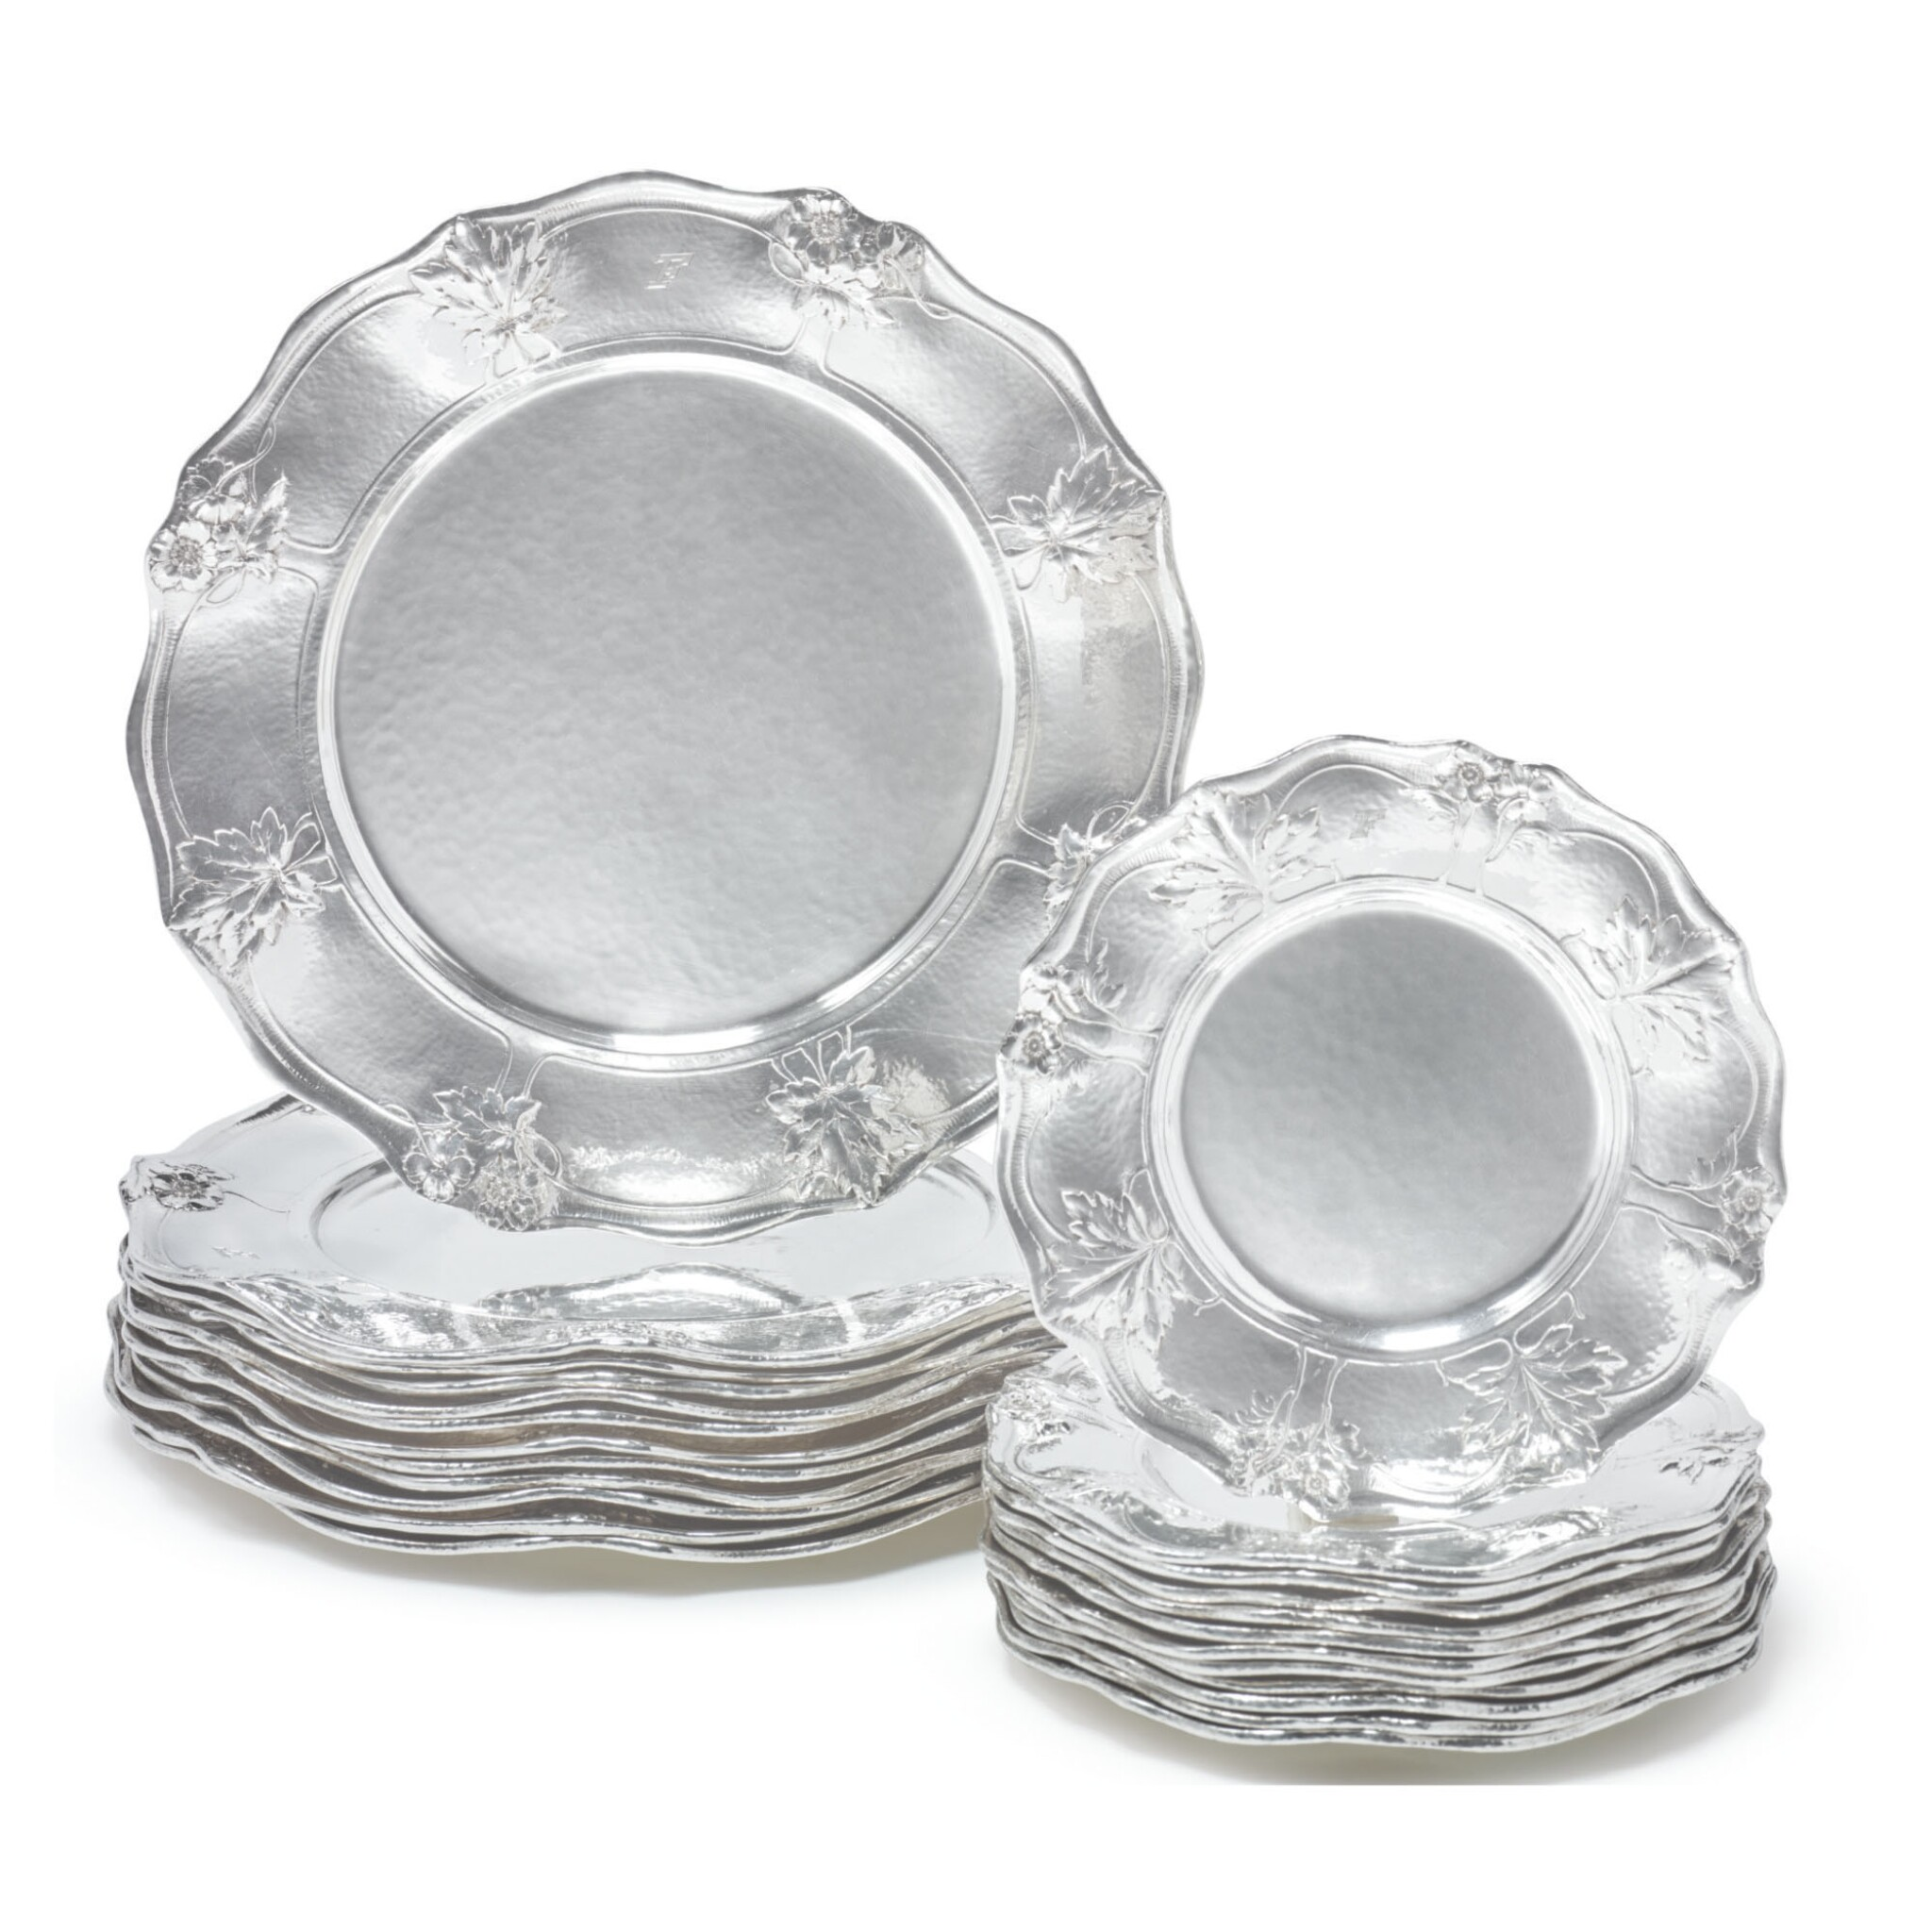 View full screen - View 1 of Lot 1833. A SET OF TWELVE AMERICAN SILVER DINNER AND TWELVE BREAD PLATES, MARTELÉ, GORHAM MFG. CO., PROVIDENCE, RI, 1909-1916.